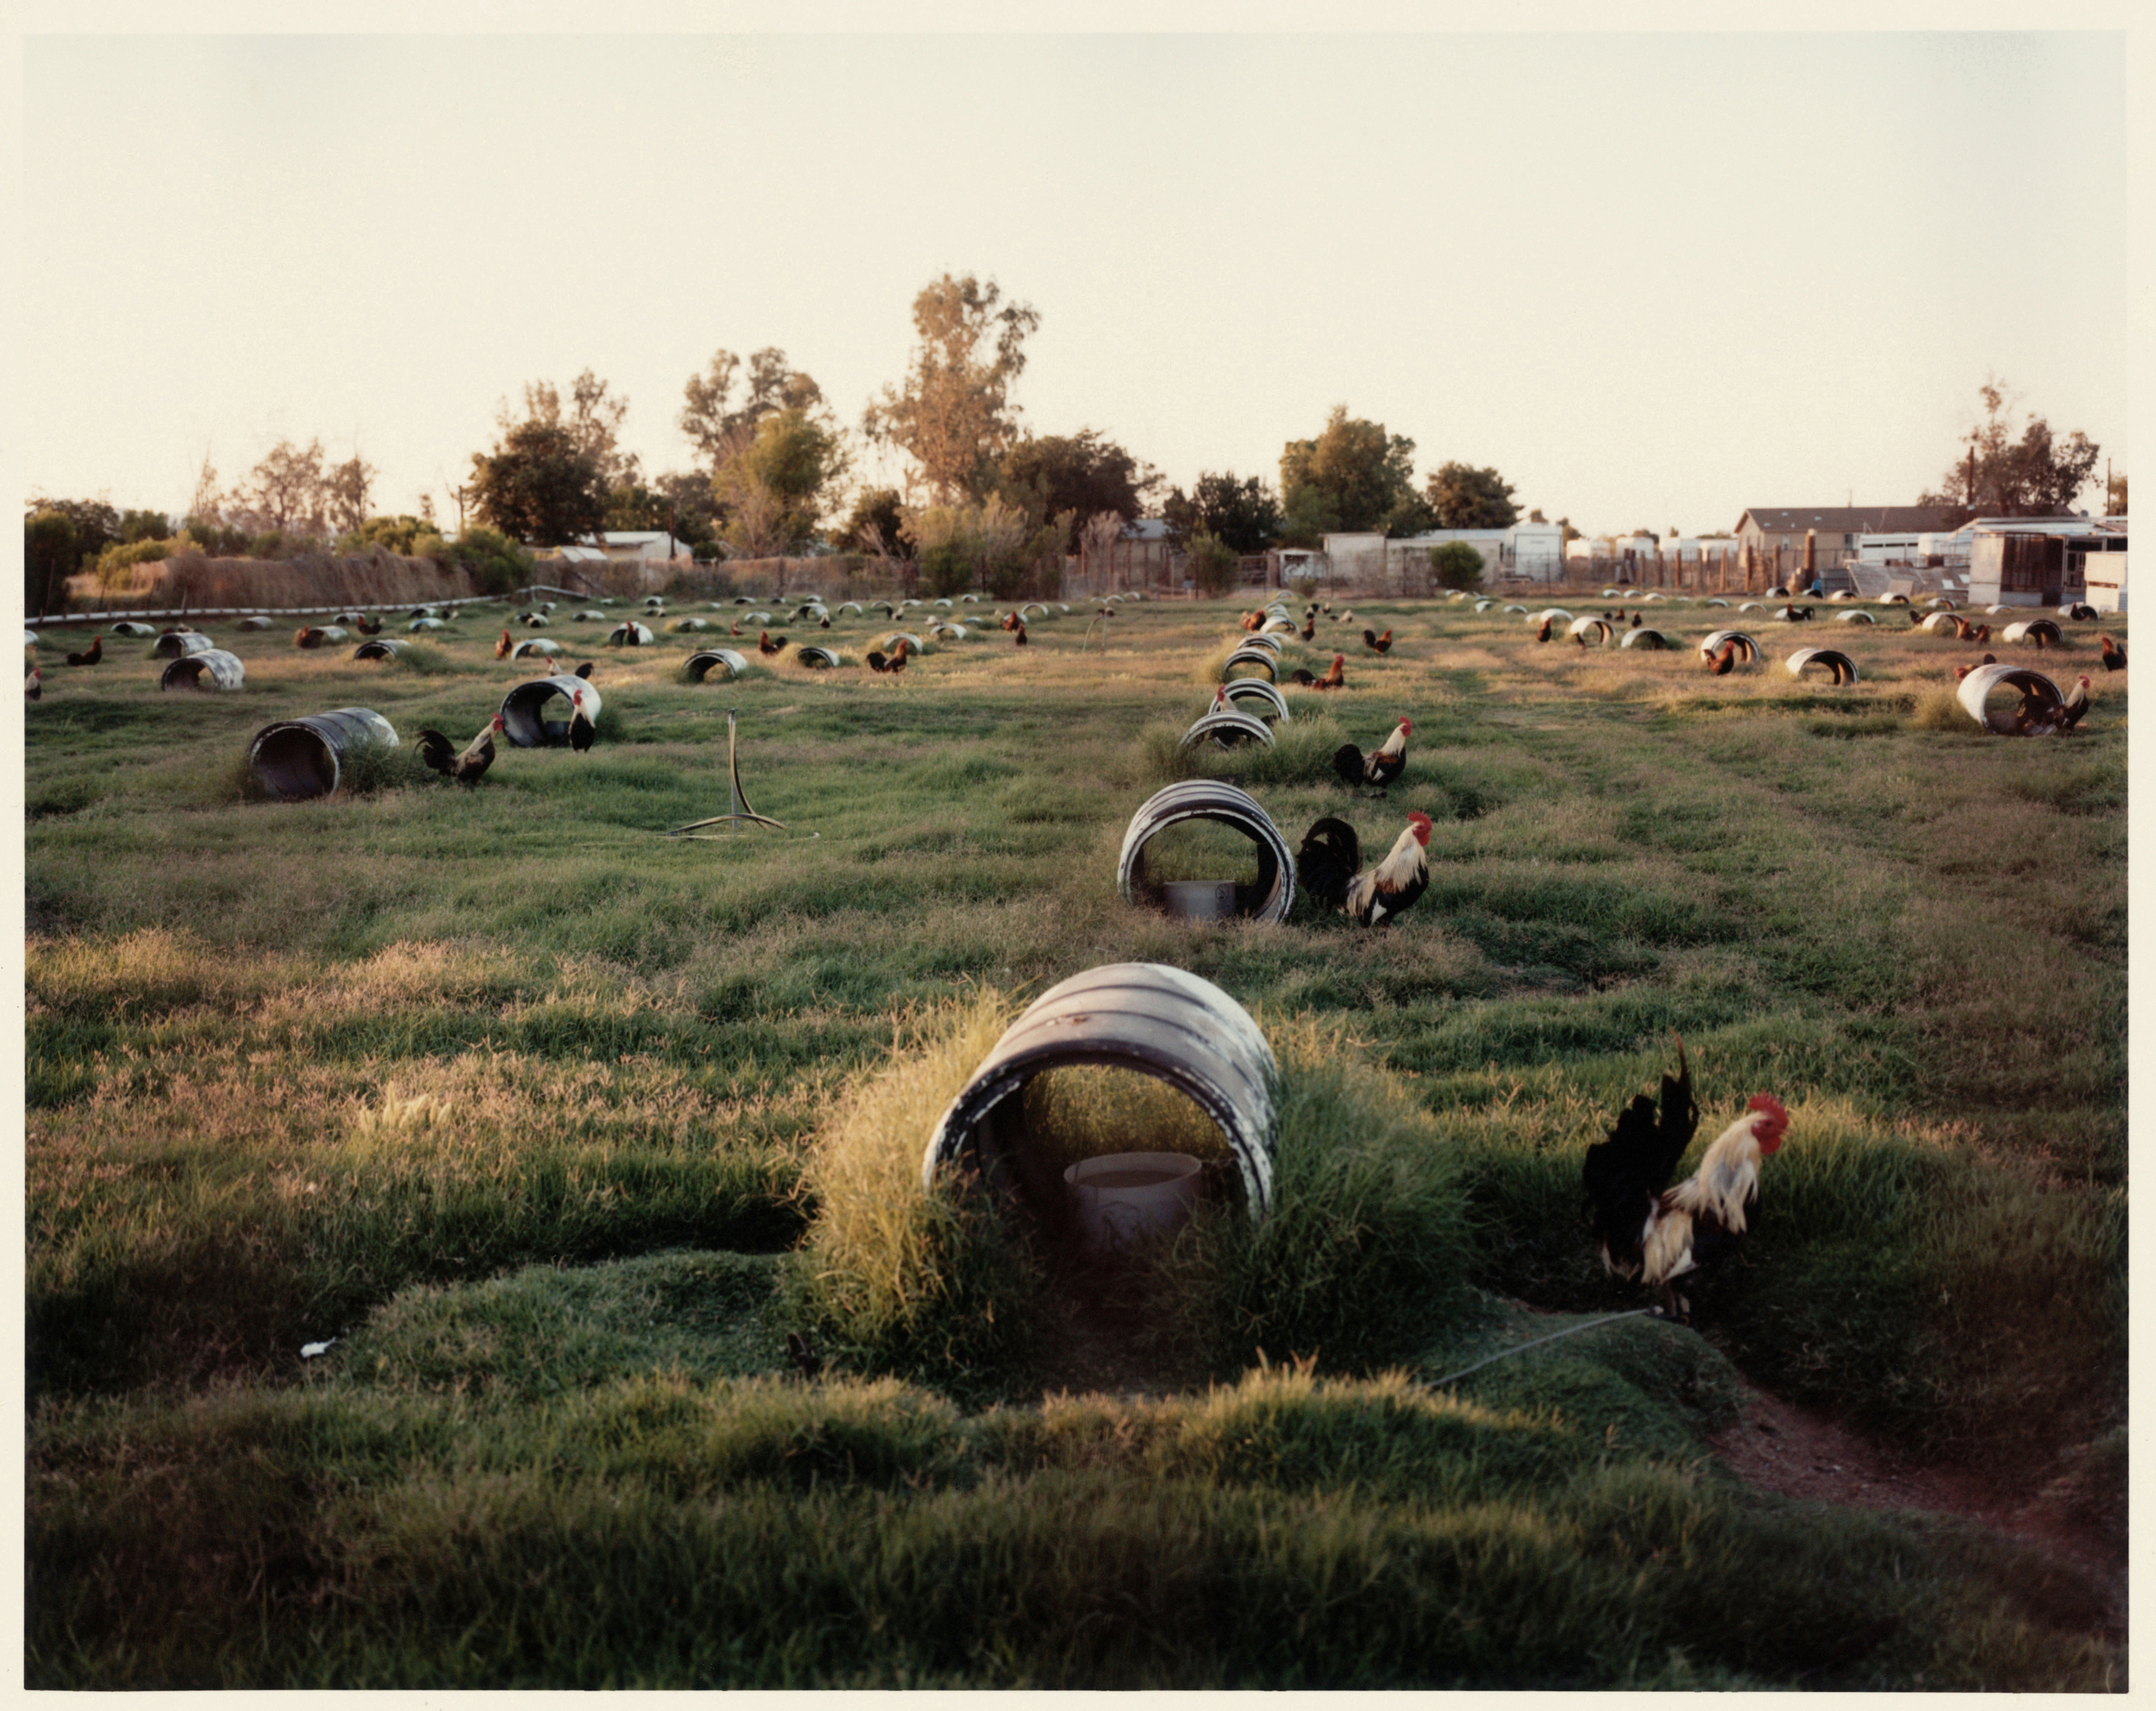 Lucy Levene     Untitled (from the L.A. Stories series,)  2009    C-print, AP ½    20 x 24 inches